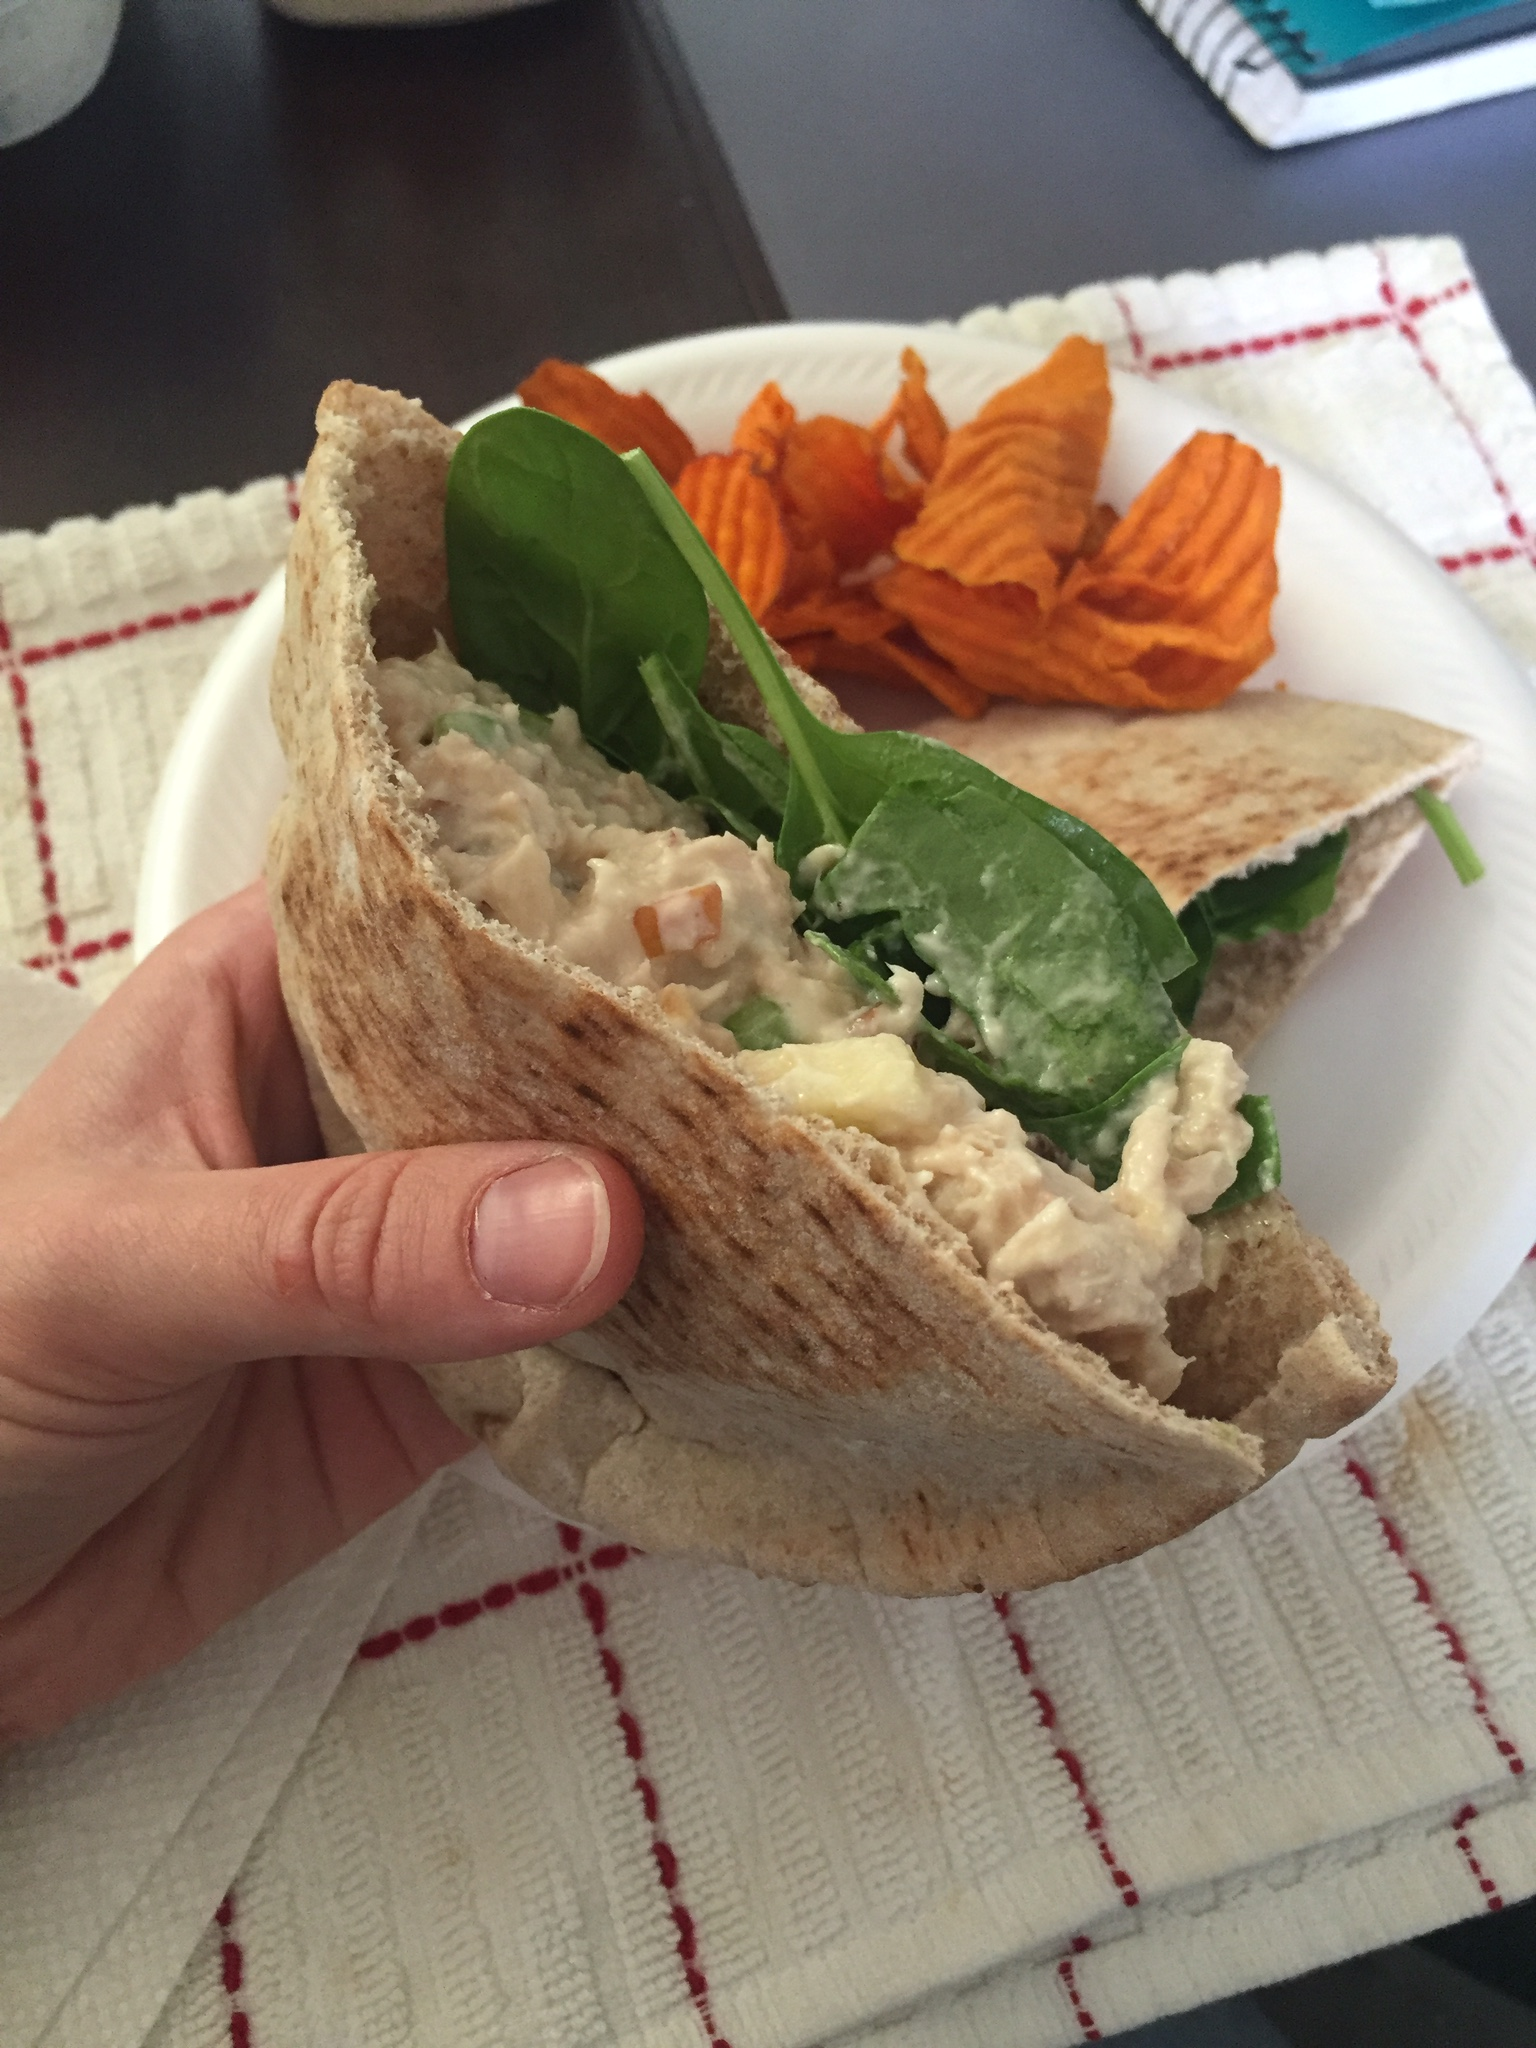 There's more than three leaves of spinach. They're just stuff under all the tuna goodness.